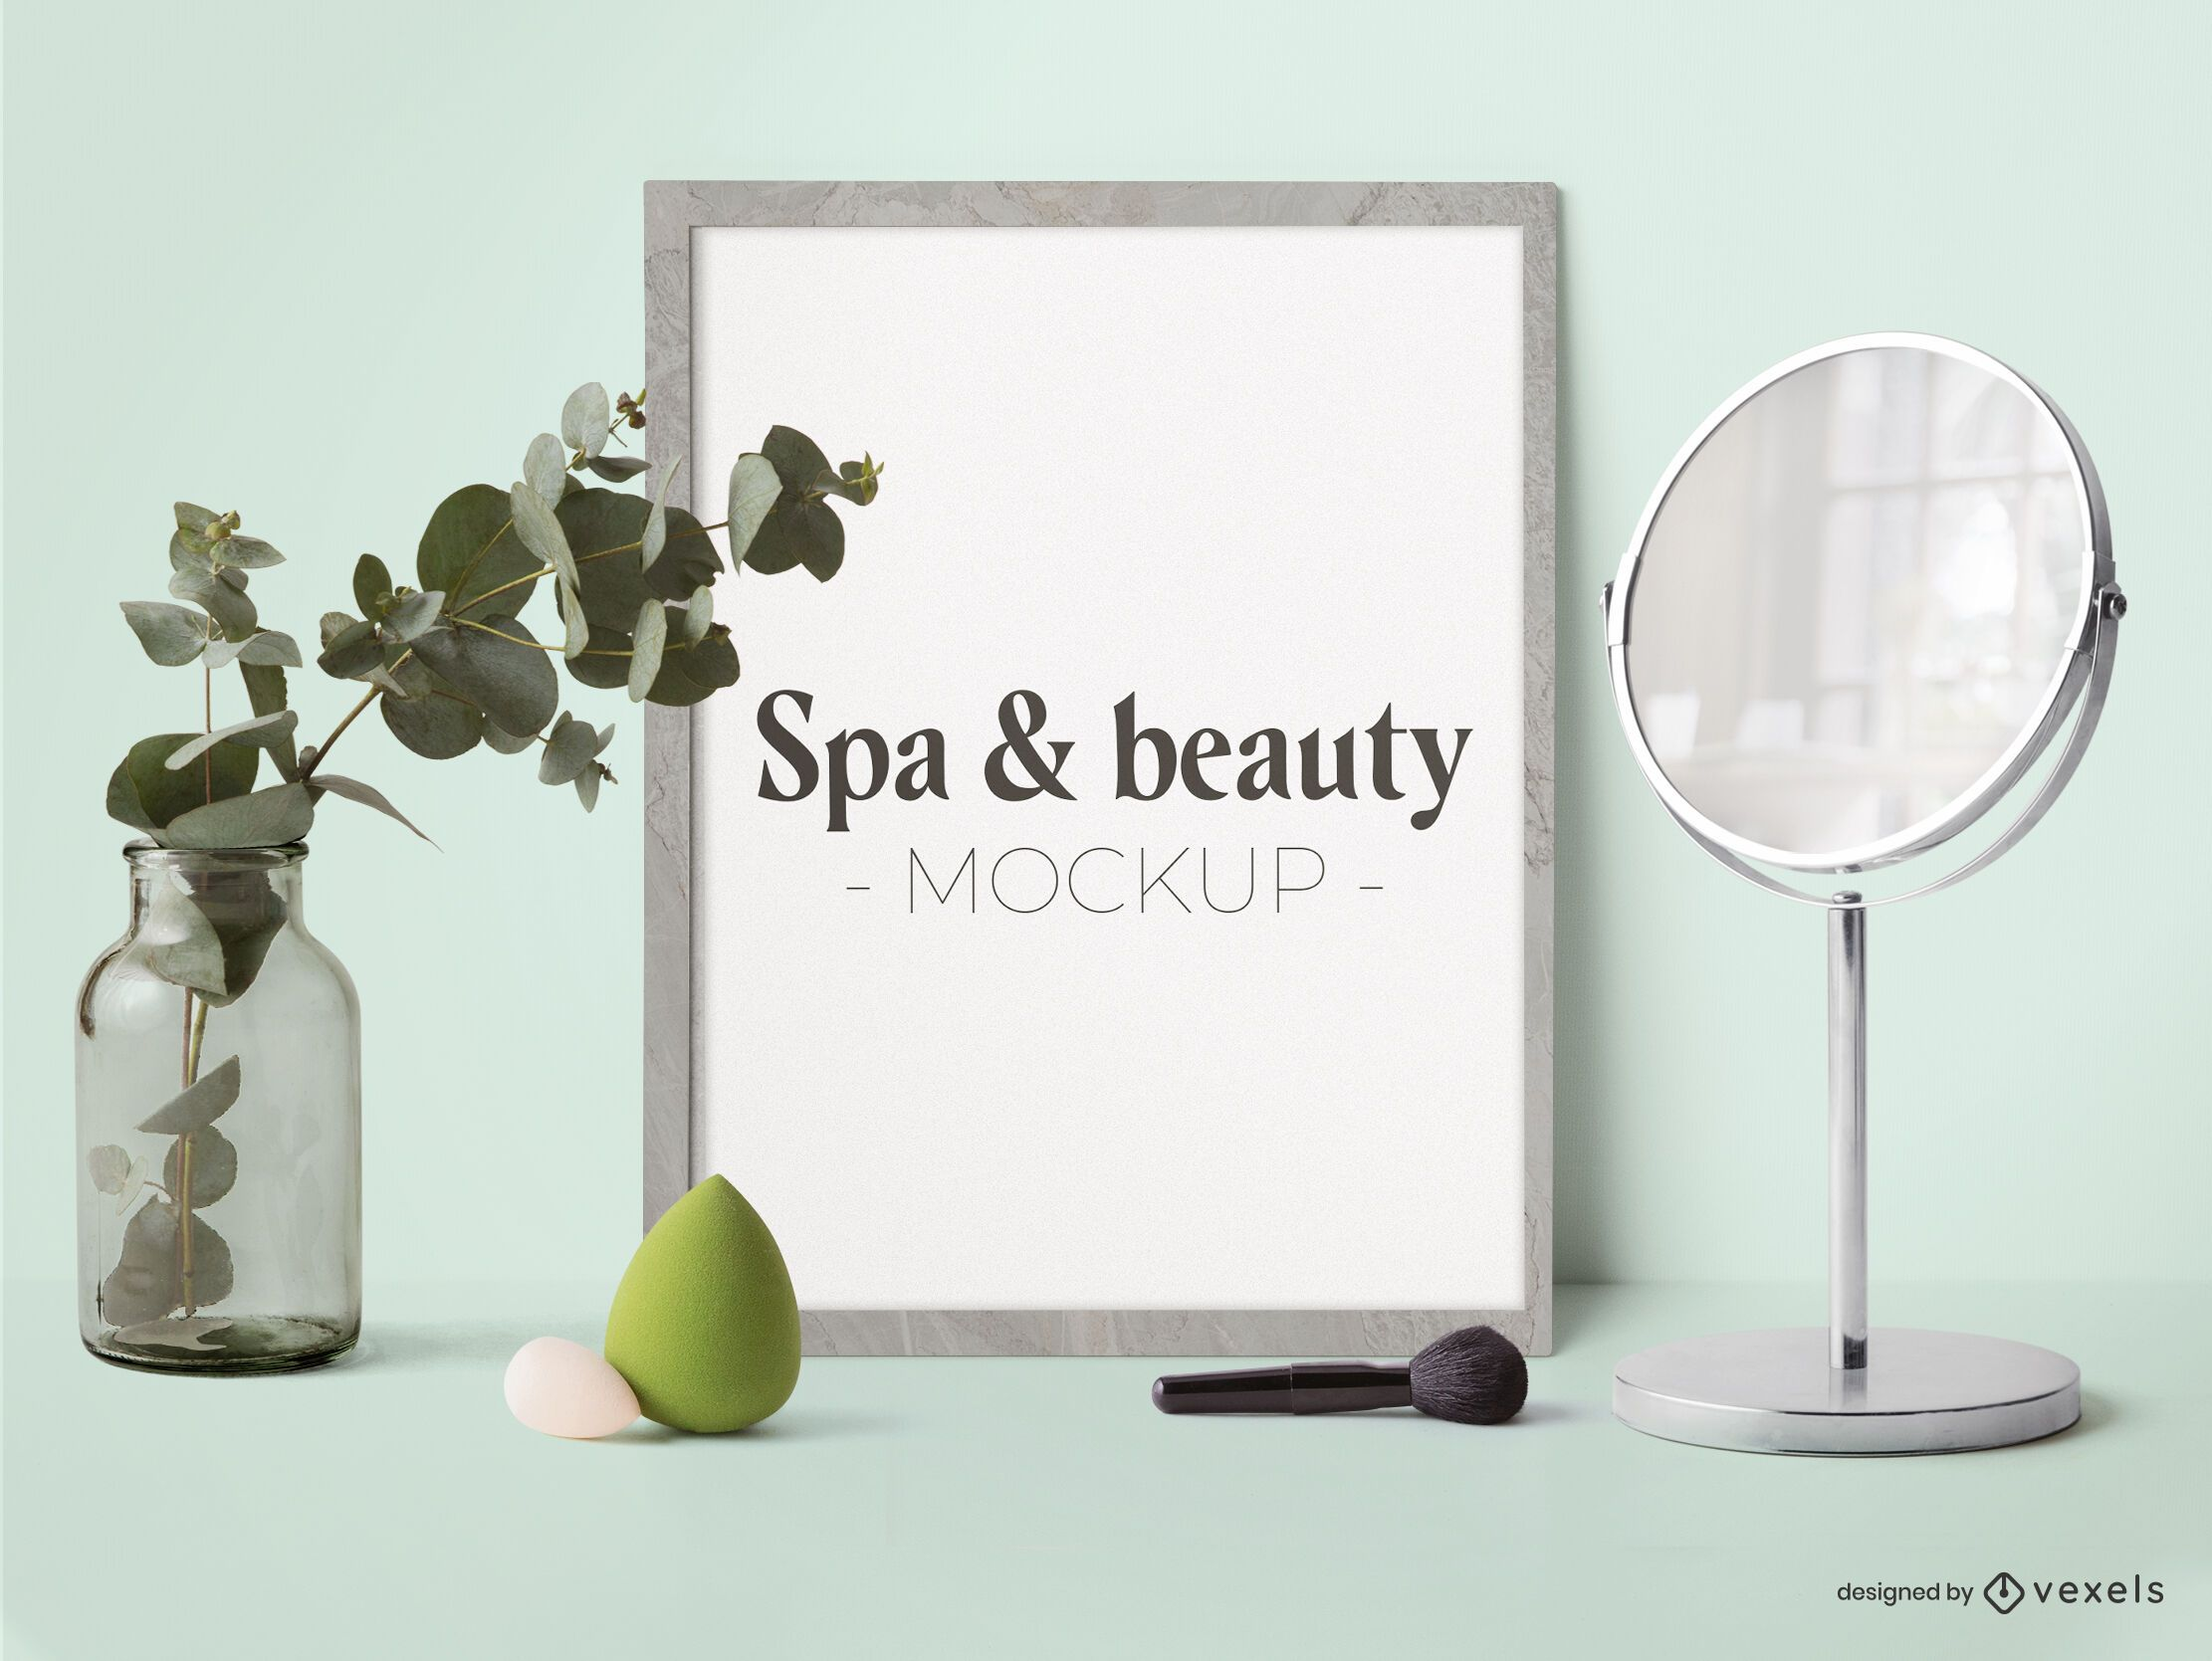 Spa & beauty poster mockup composition